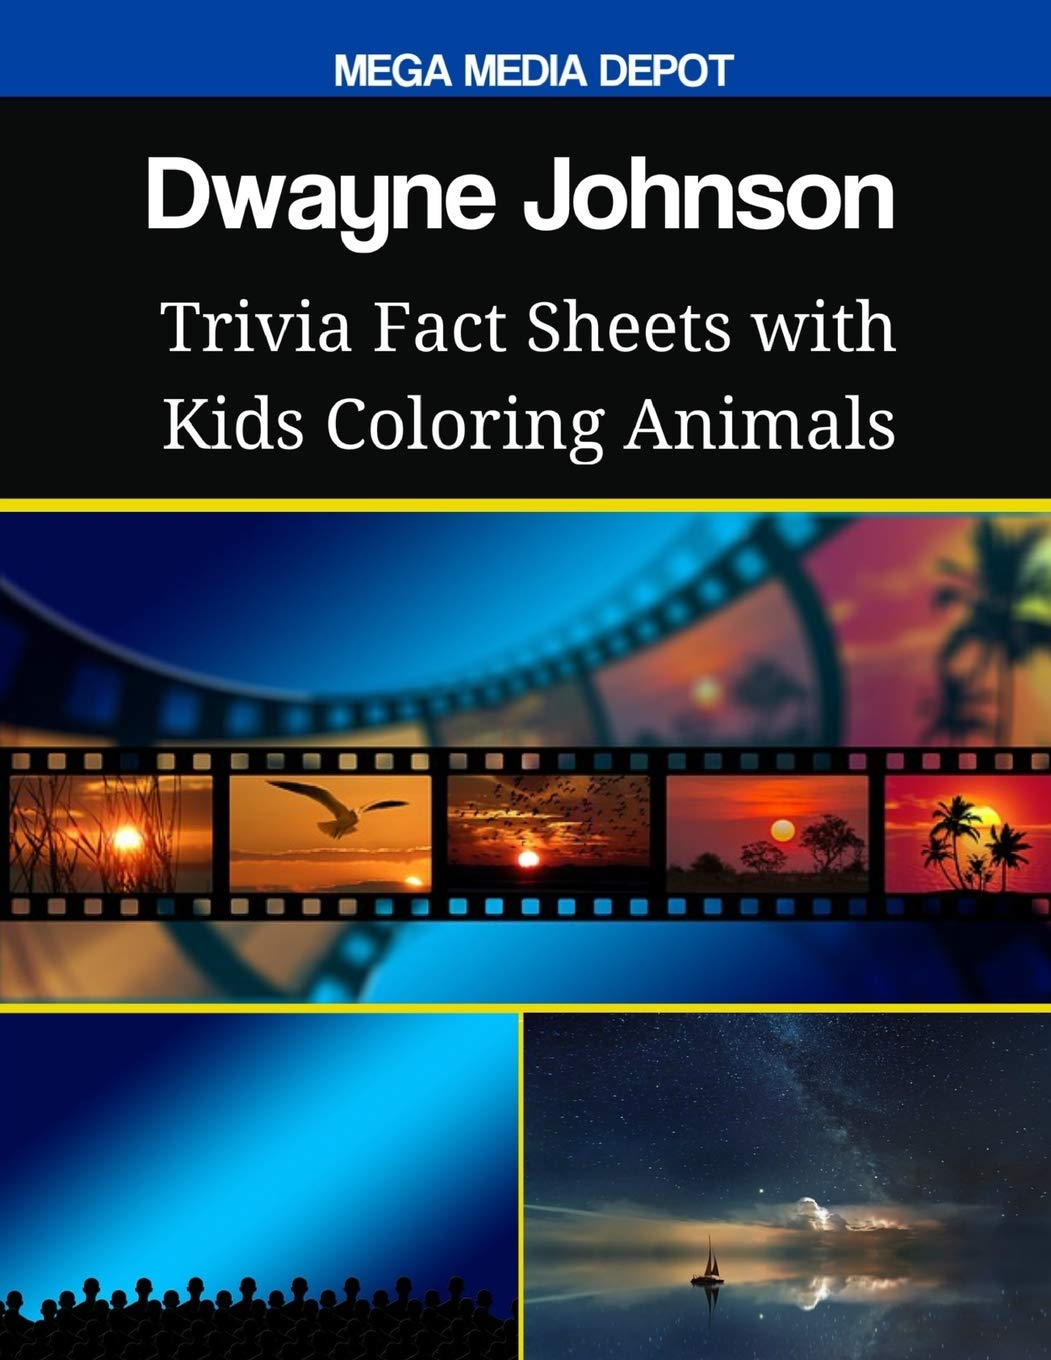 Dwayne Johnson Trivia Fact Sheets With Kids Coloring Animals